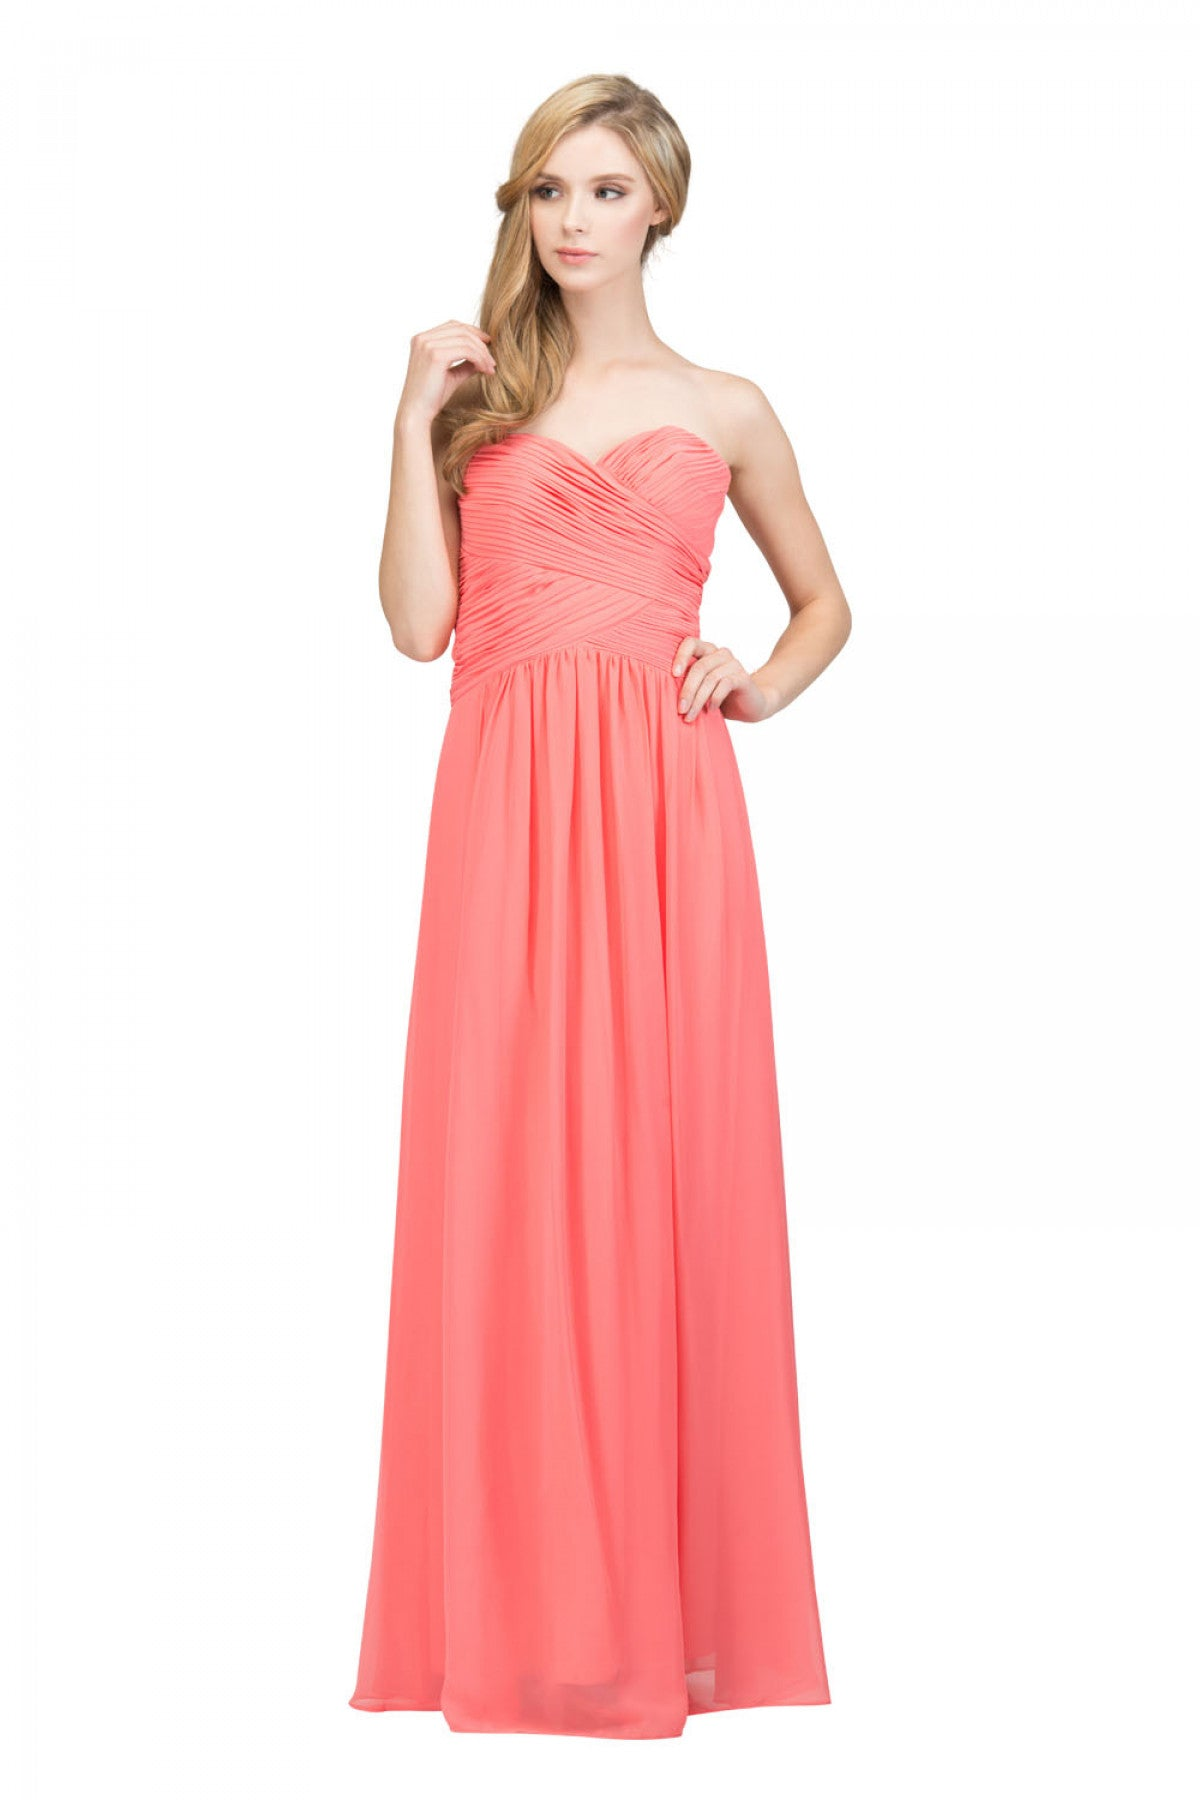 2e93362519 Starbox USA L6126 Sweetheart Ruched Chiffon Coral Bridesmaid Dress. Tap to  expand